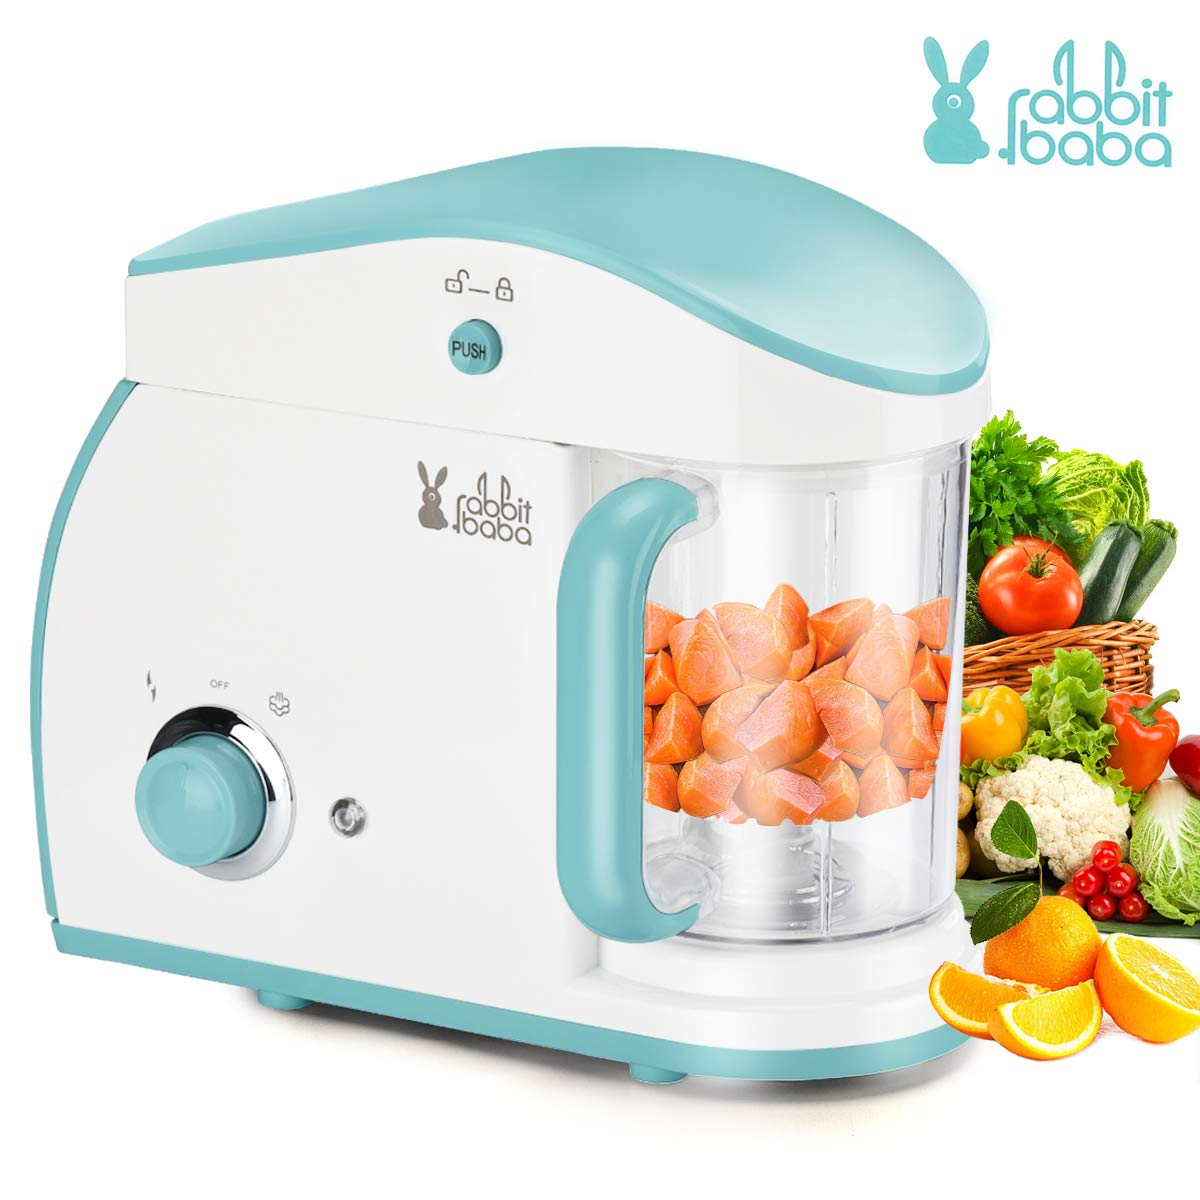 Rabbit baba Baby Food Maker, Fashion Look Baby Food Processor with Touch Screen Control, Quick Clean Multifunctional Baby Food Blender, Steamer, Cooker, Defrost for Infants and Toddlers Food